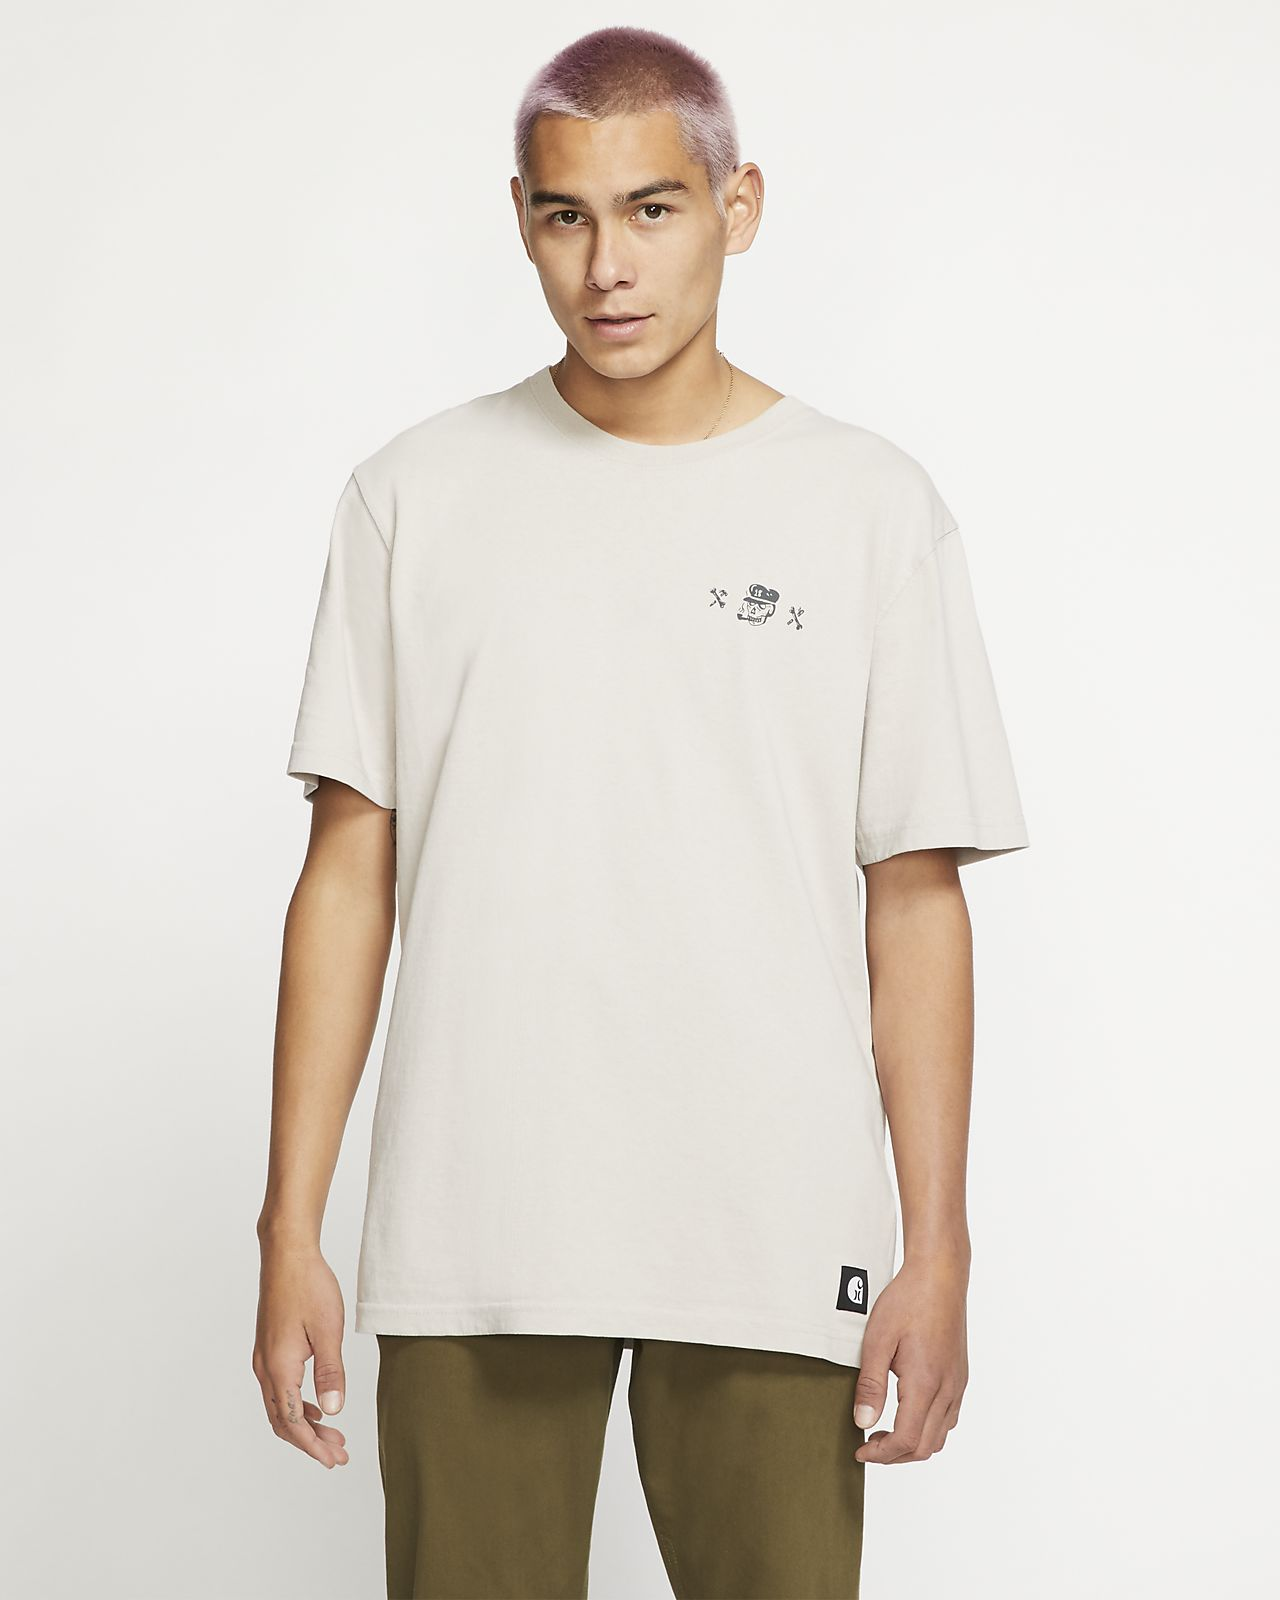 Hurley x Carhartt Handcrafted Men's T-Shirt